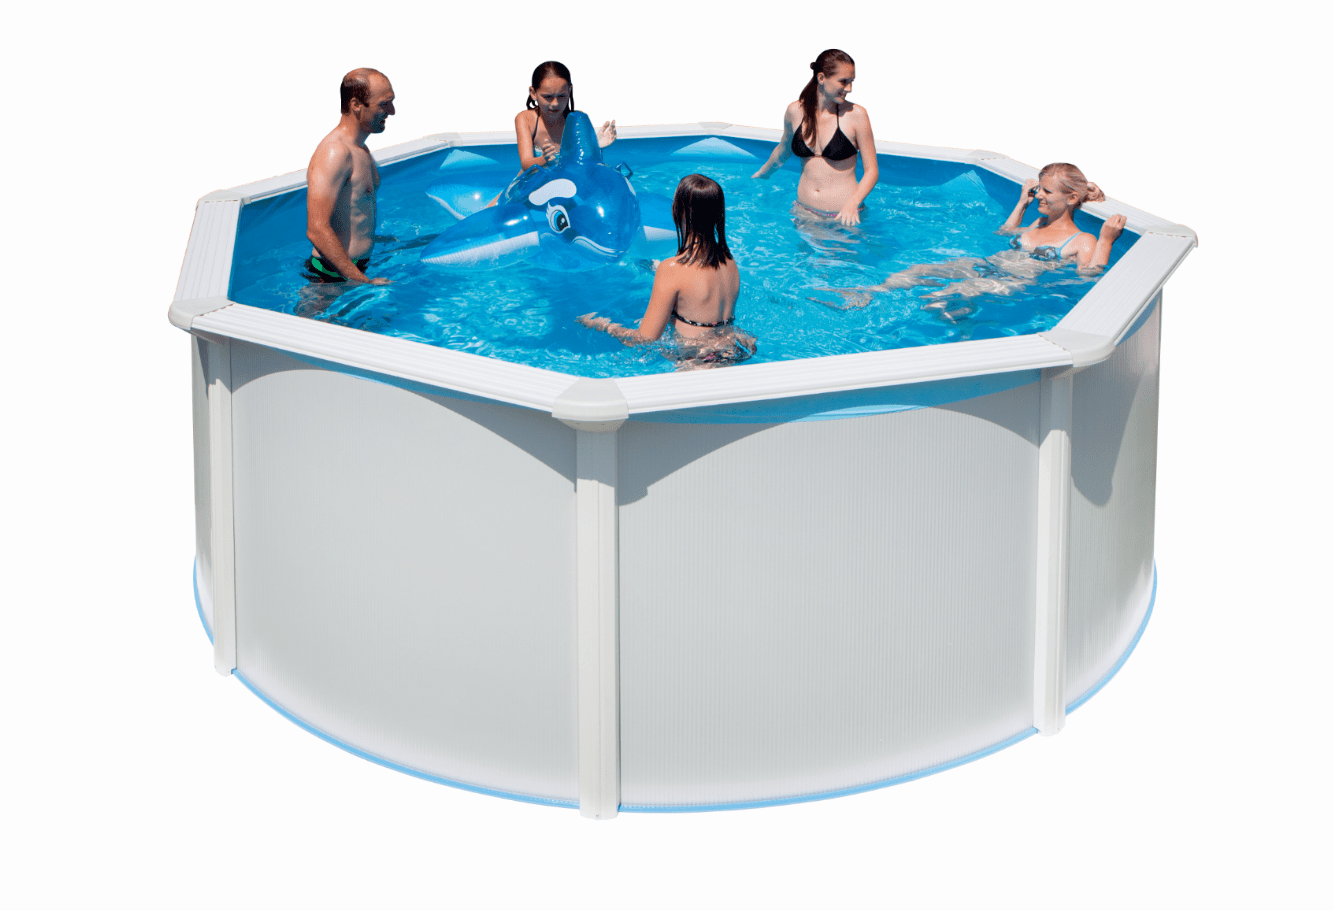 Pool Rund Winterfest Steinbach Highline Pool Rund Ø 460 X 132 Cm